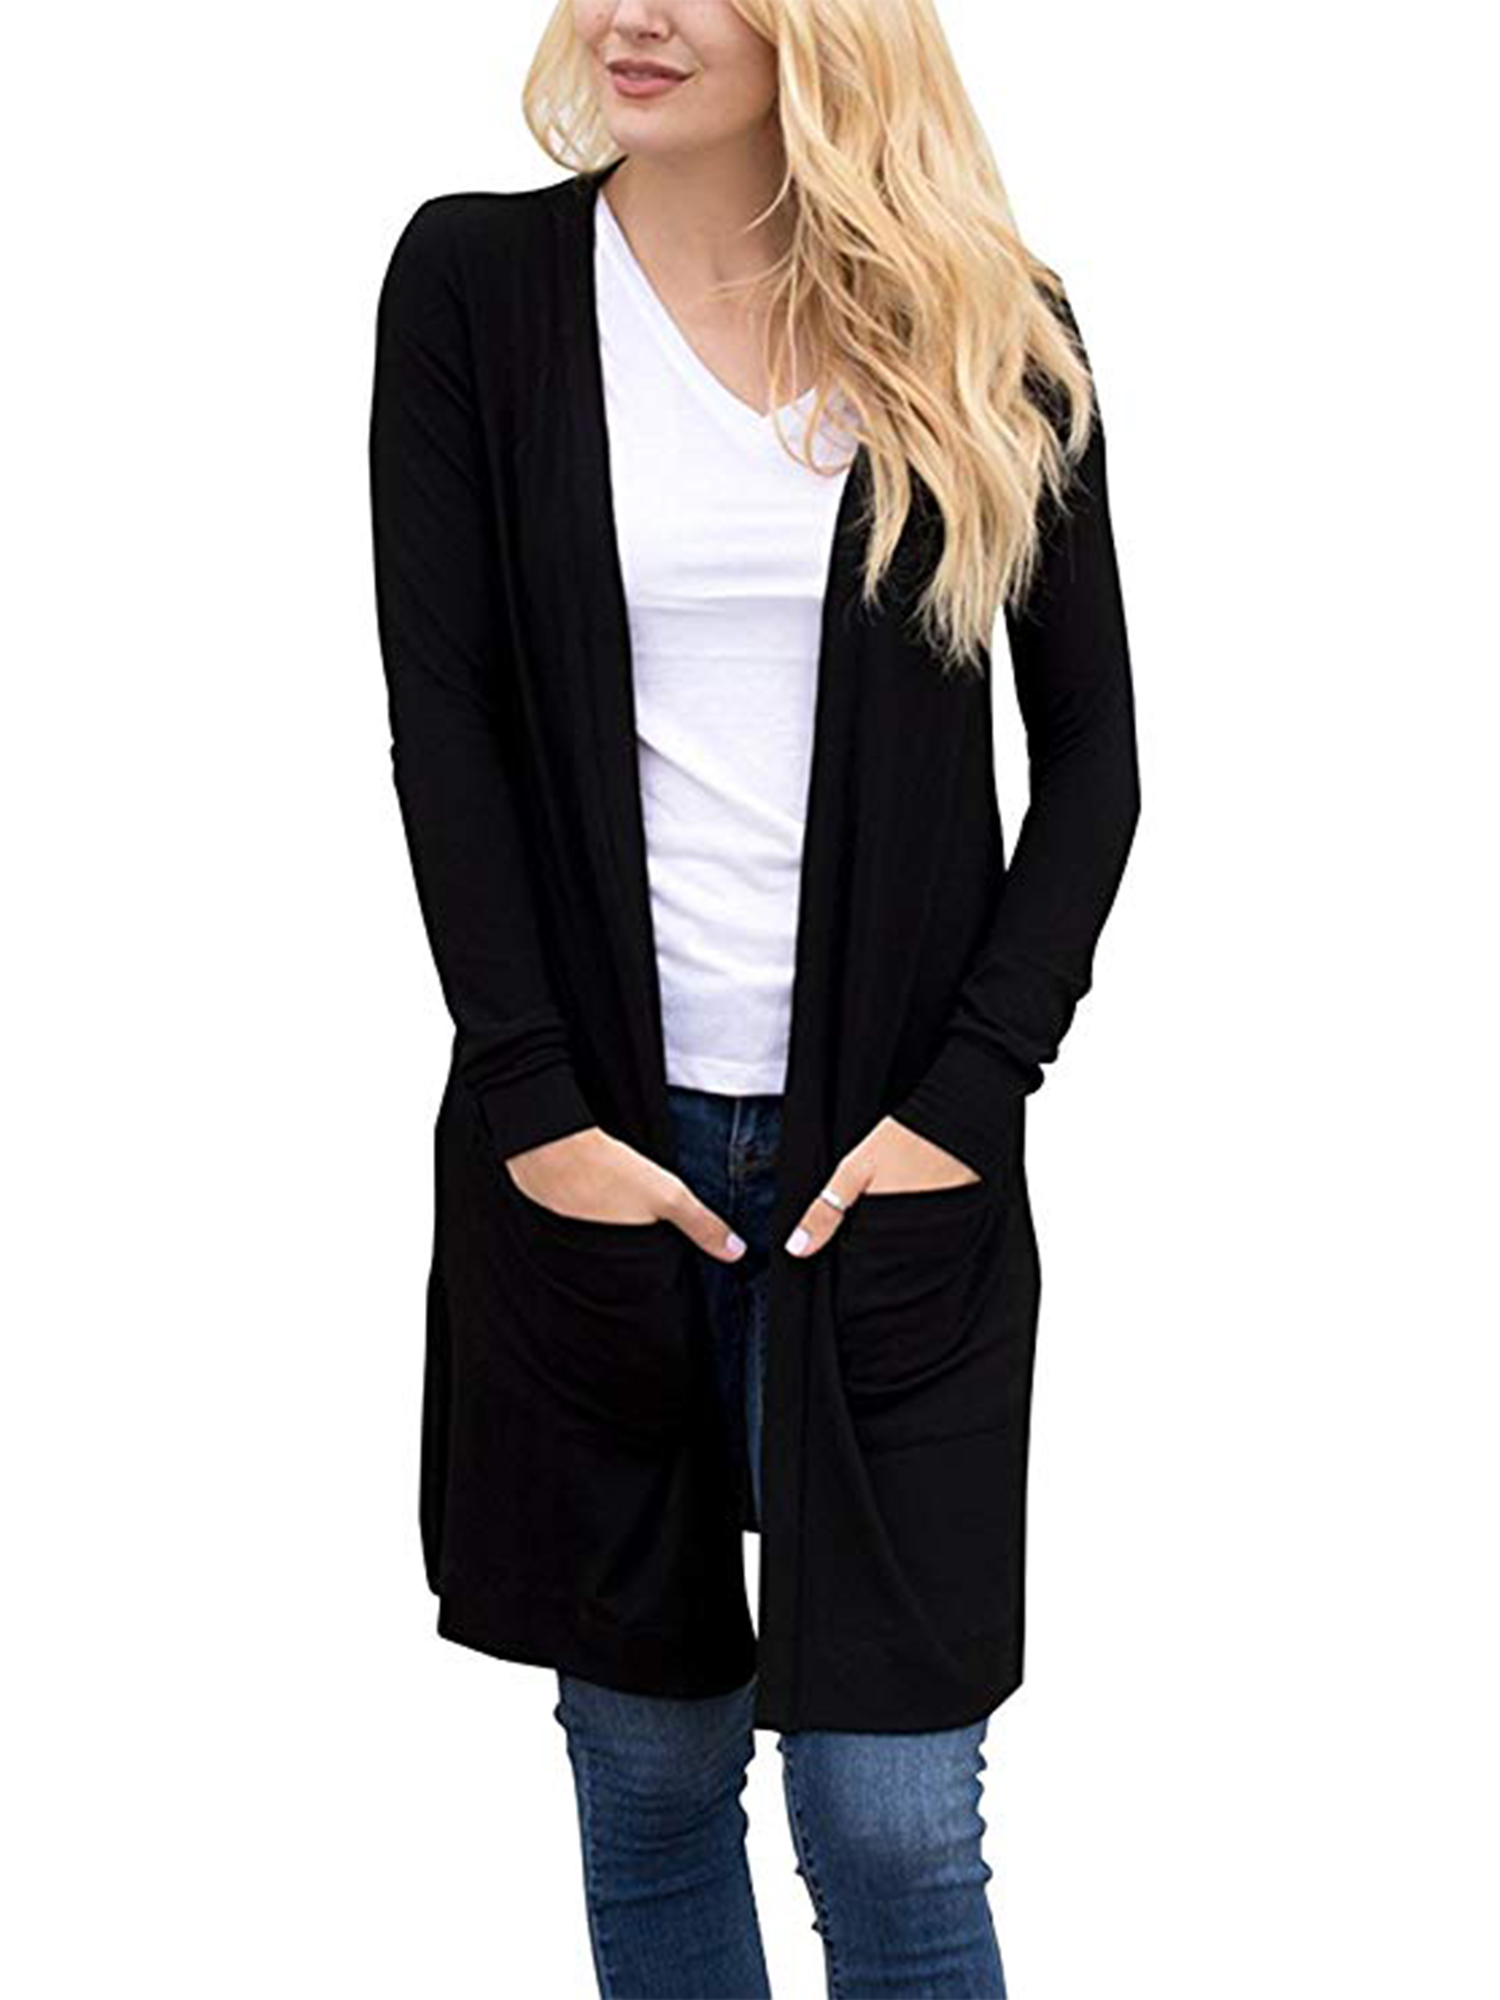 Juniors Sweater Long Sleeve Open Front Lightweight Kimono Cardigan with Pocket Knitted Coat Tops Navy Blue/Black Plus Size S-3XL